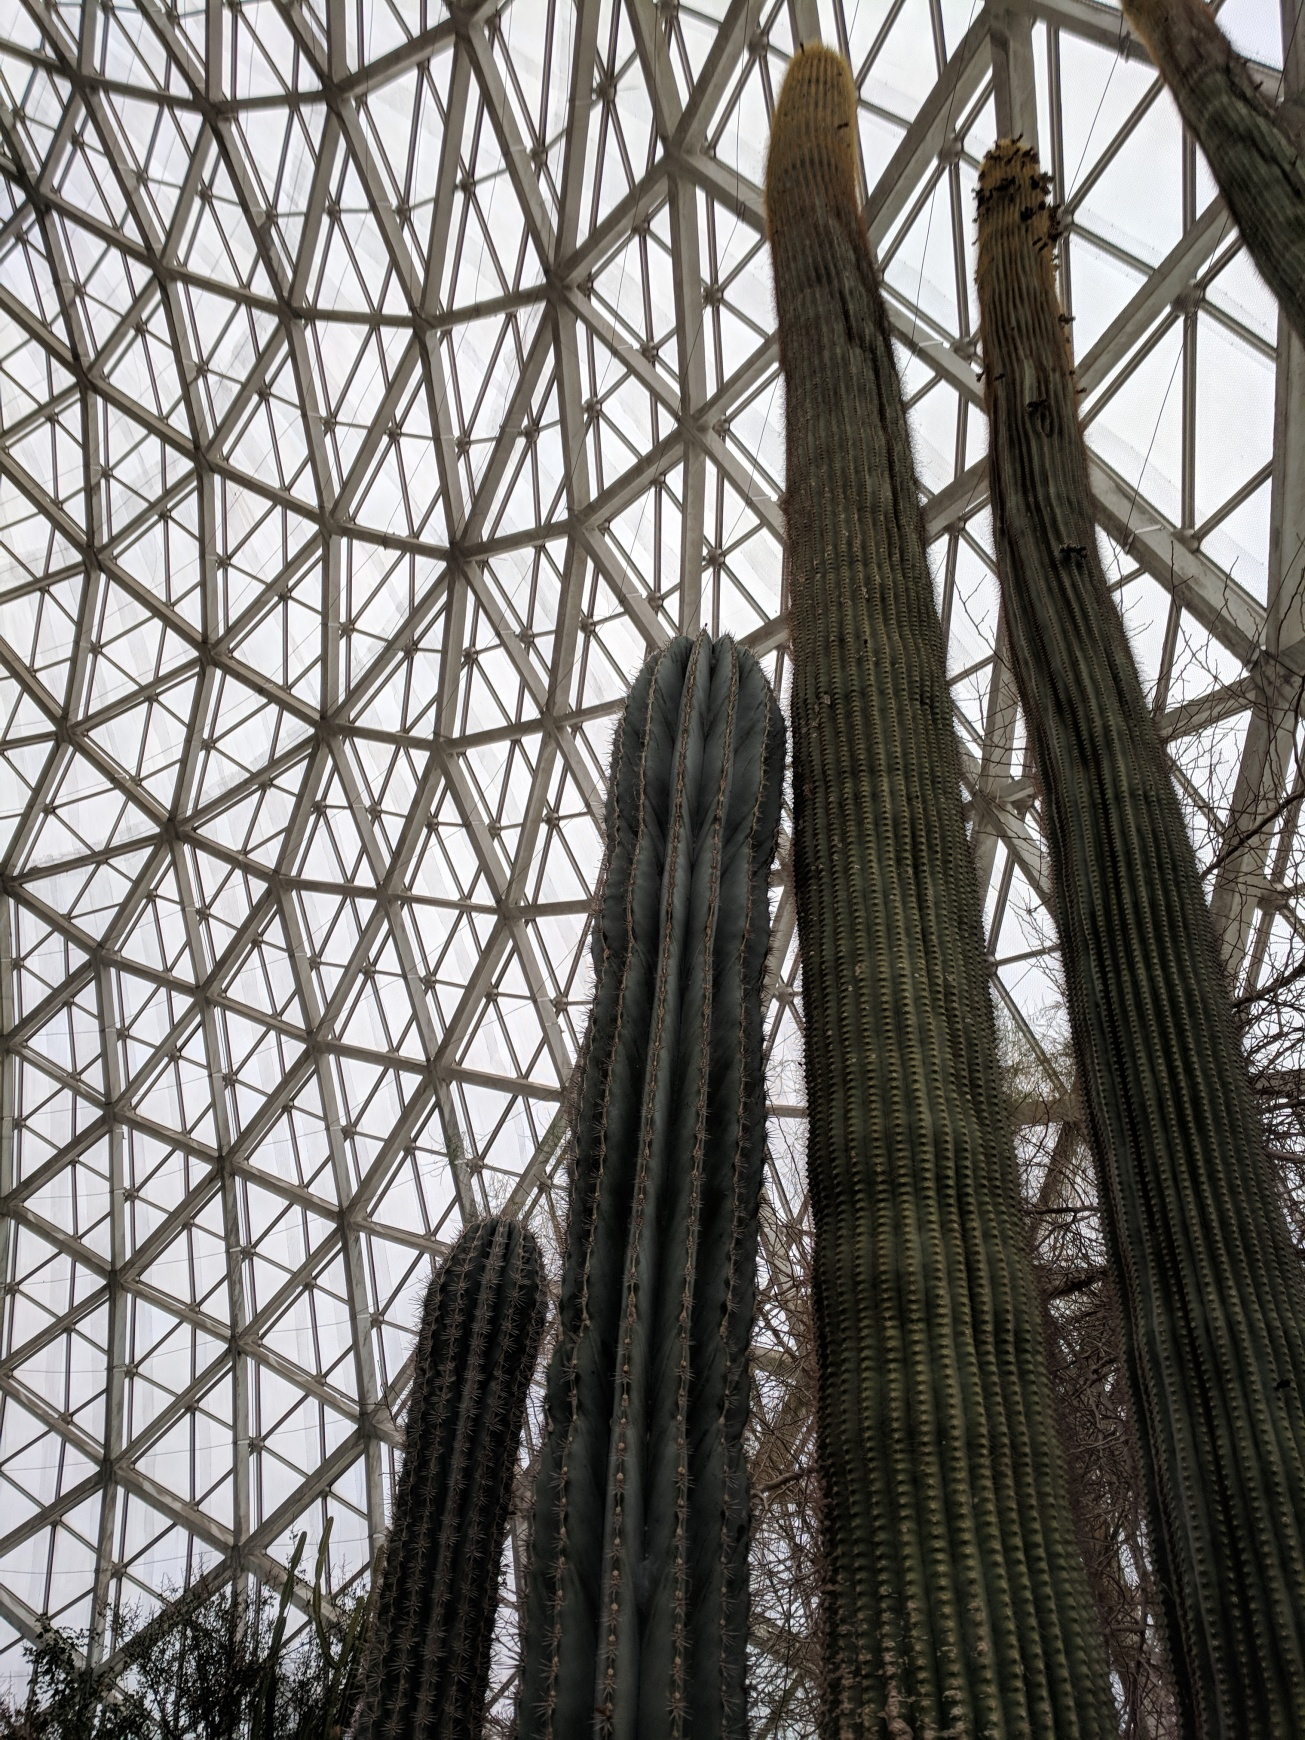 Cactus and ceiling